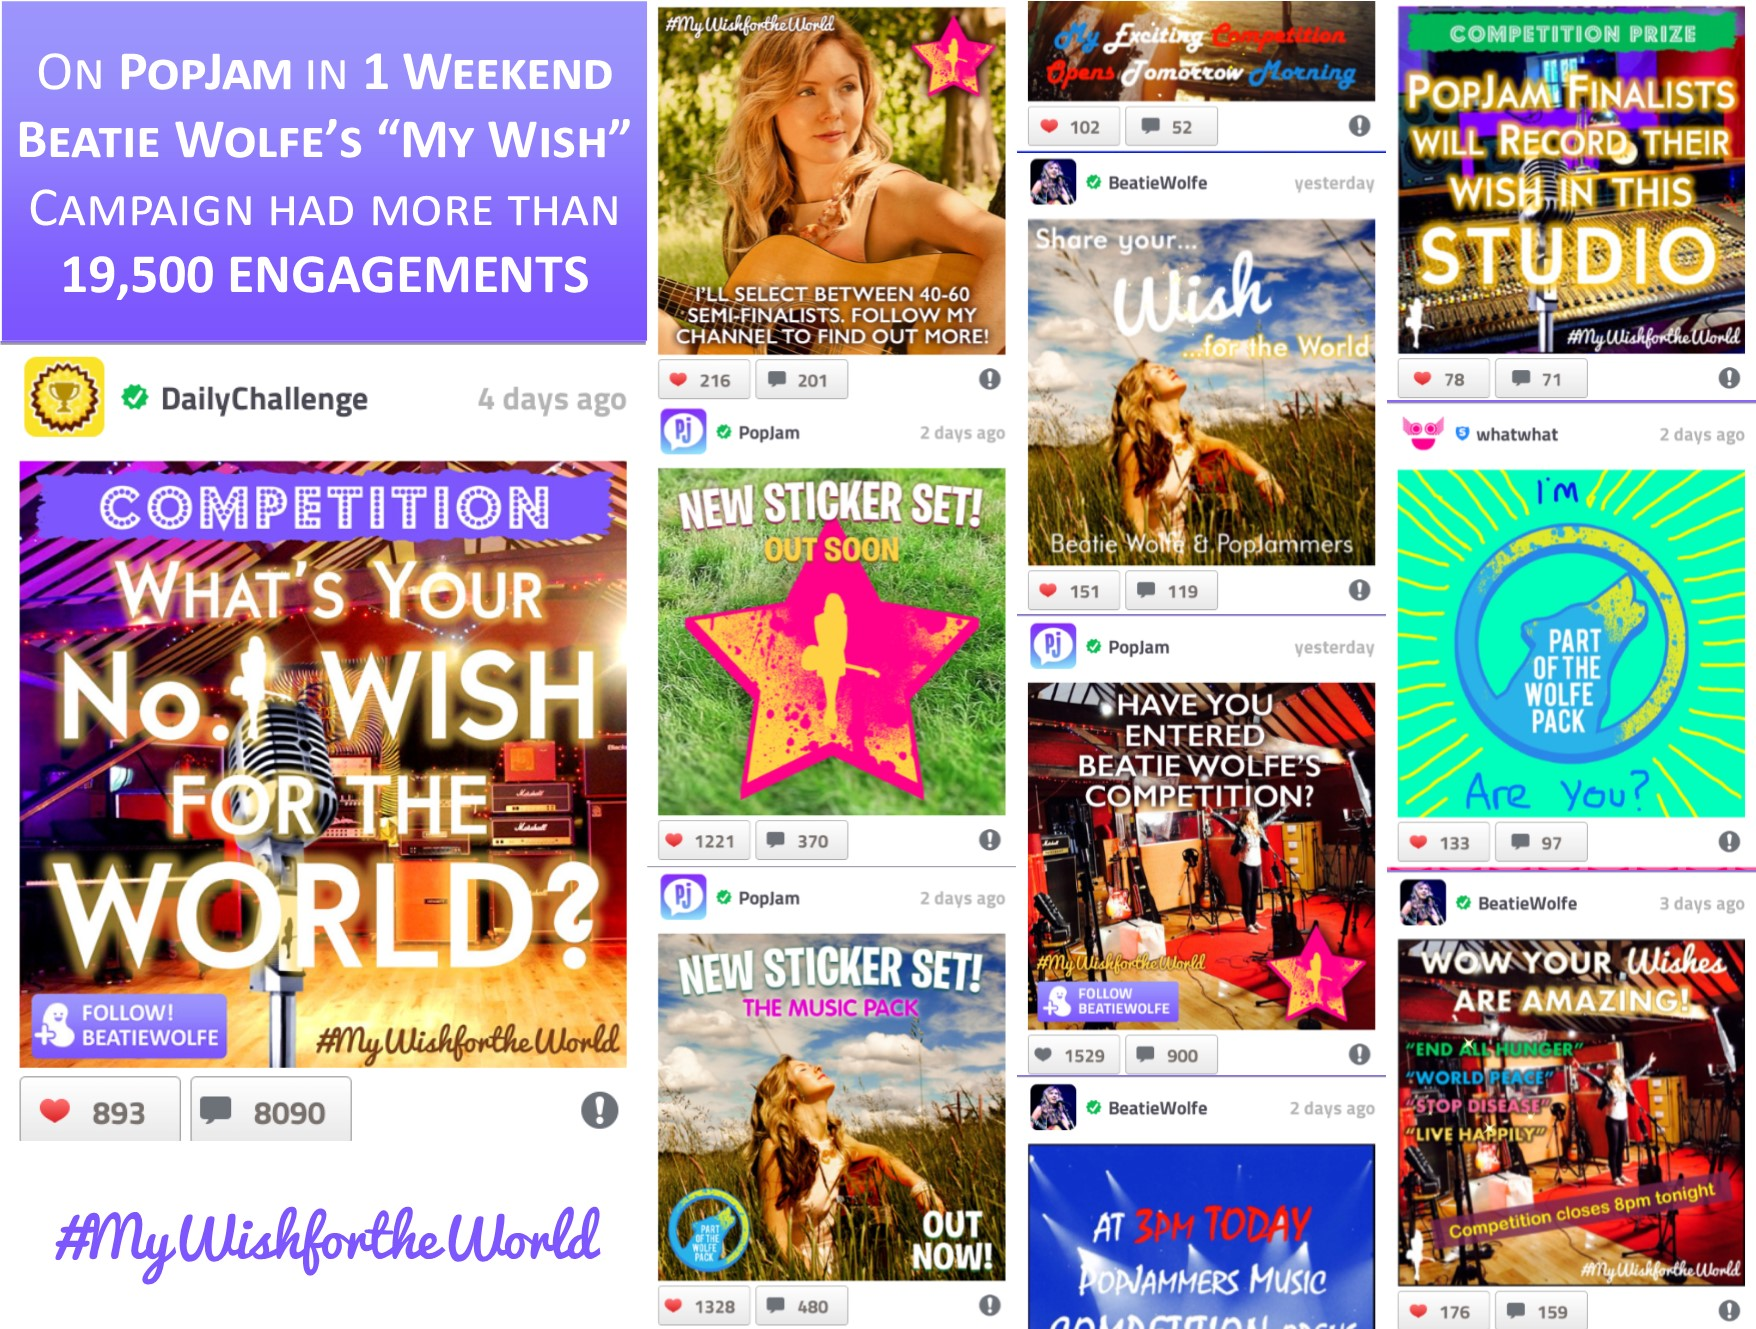 weekend results Beatie Wolfe + PopJam - My Wish for the World - Weekend for article Summary in Screengrabs - Narrow